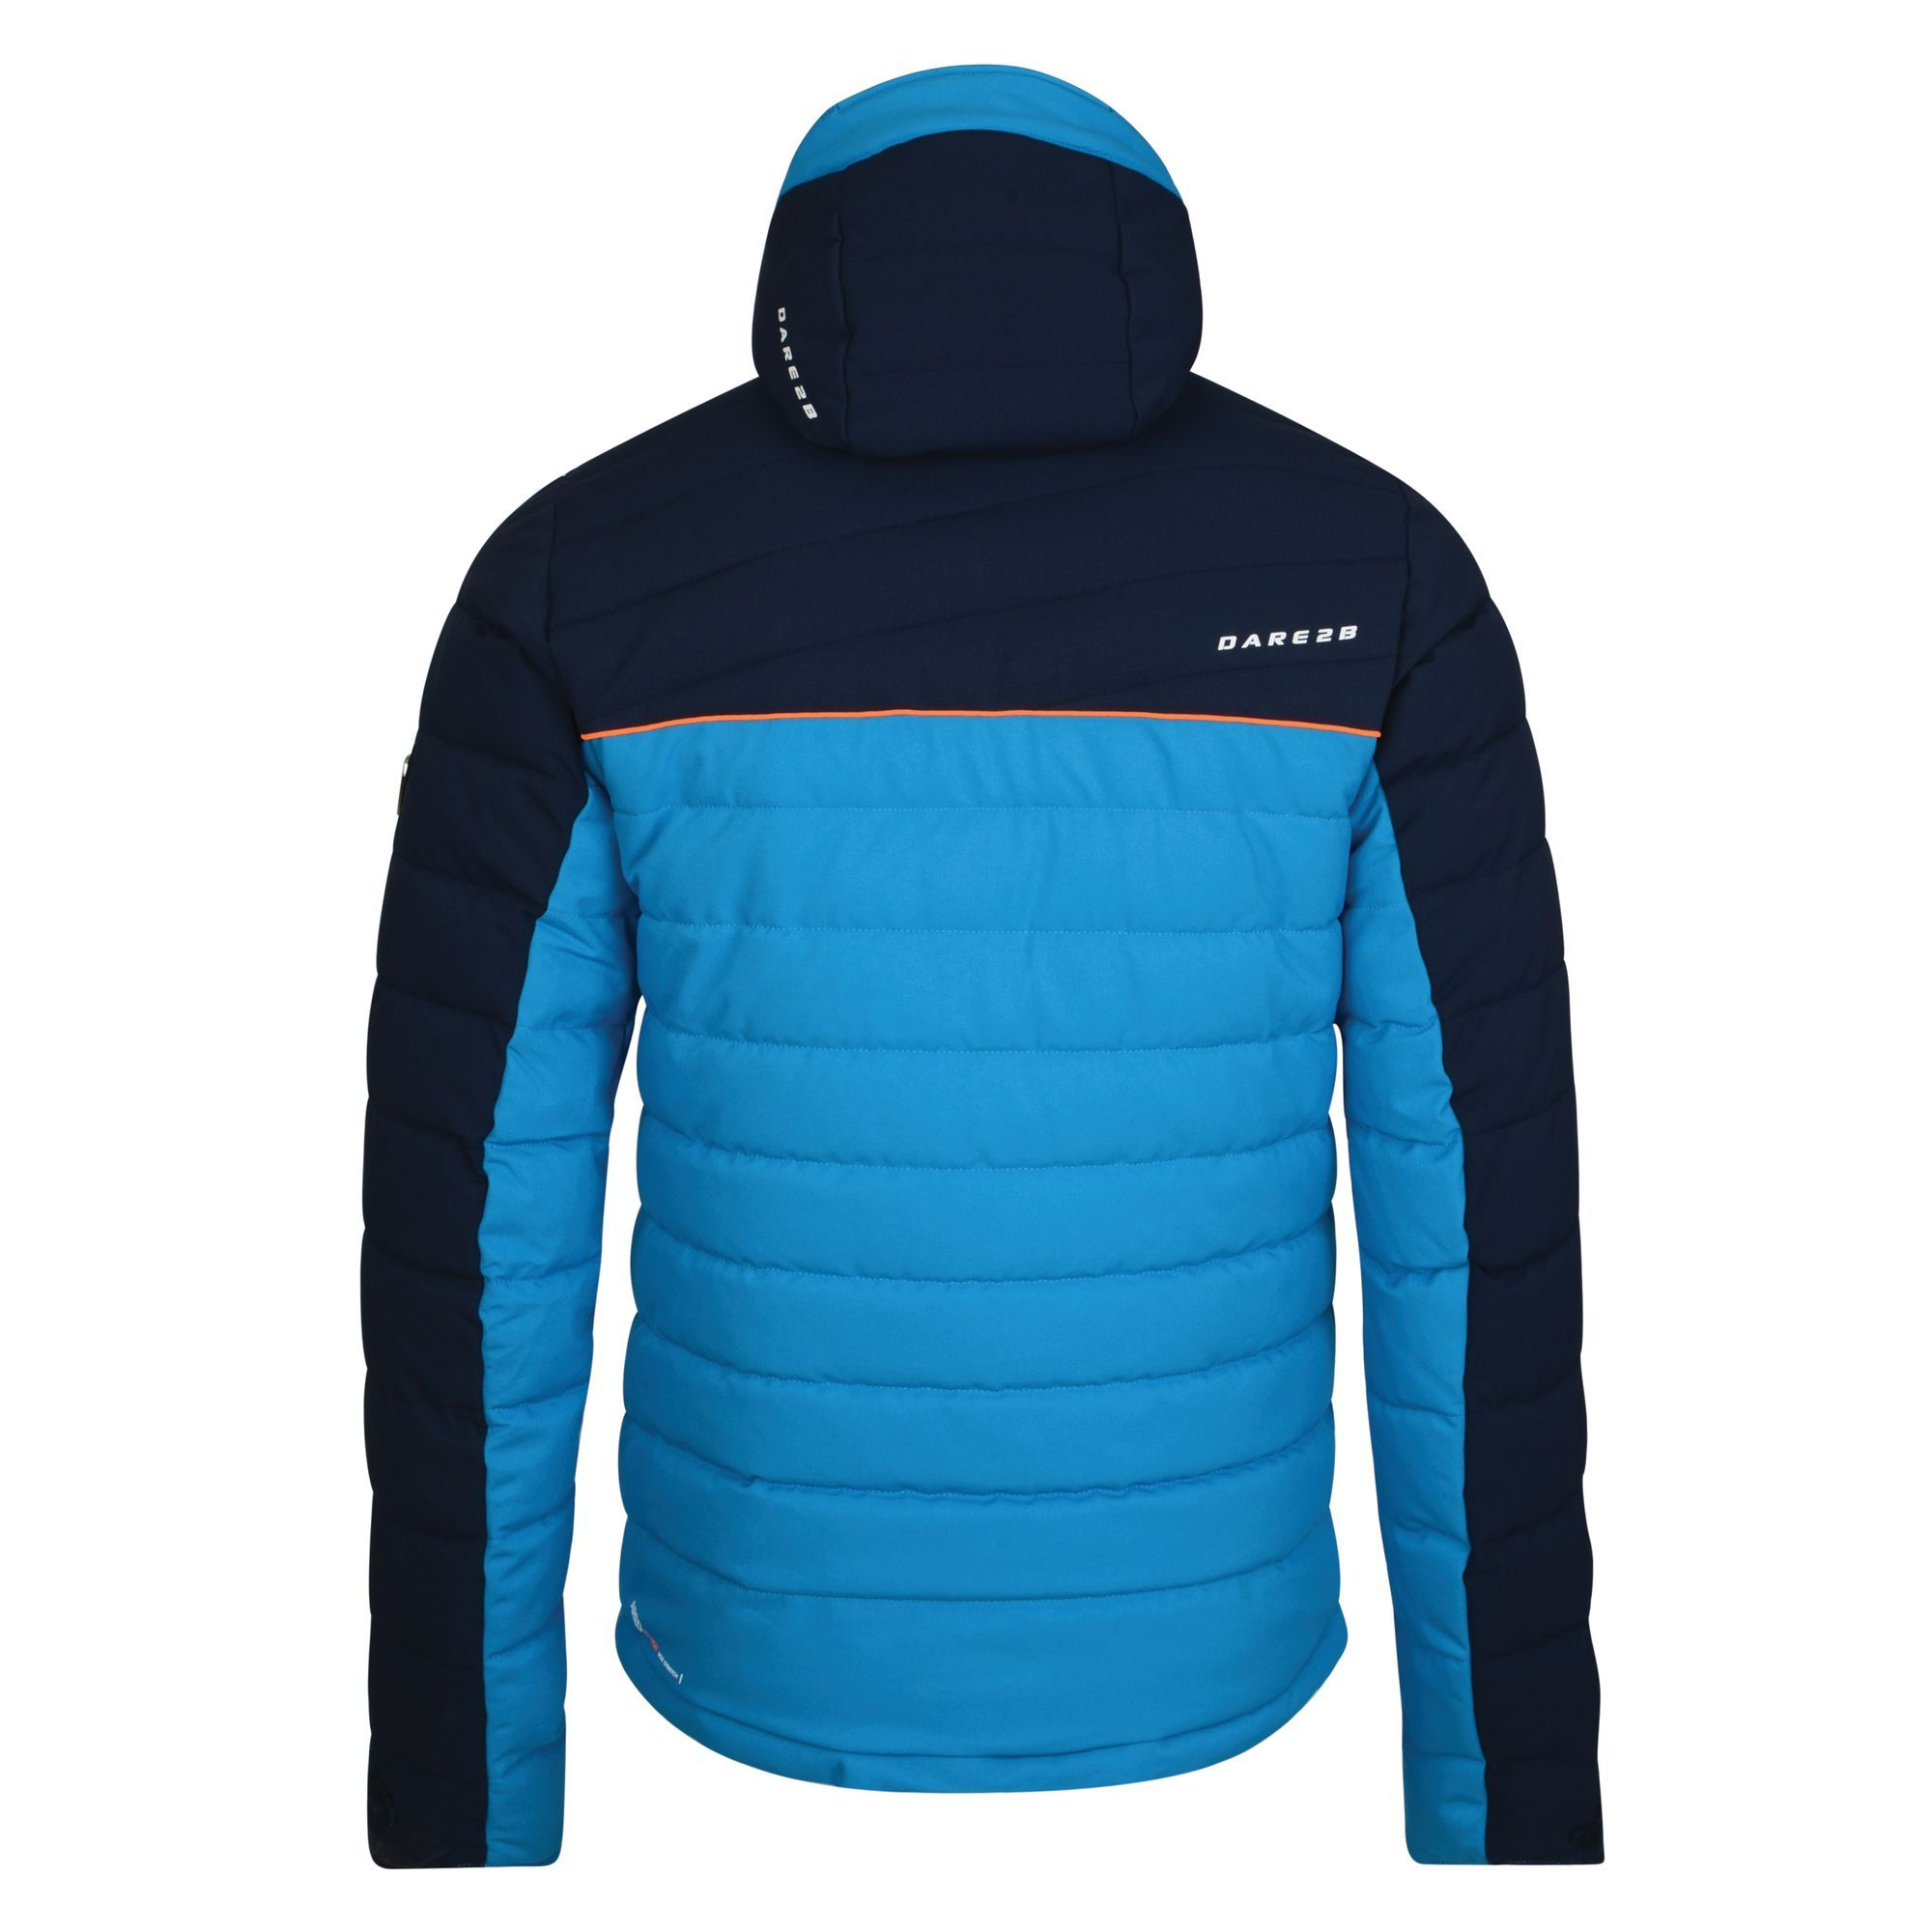 Dare2b-Mens-Waterproof-Breathable-Ski-Jacket-Huge-Clearance-RRP-200 thumbnail 34